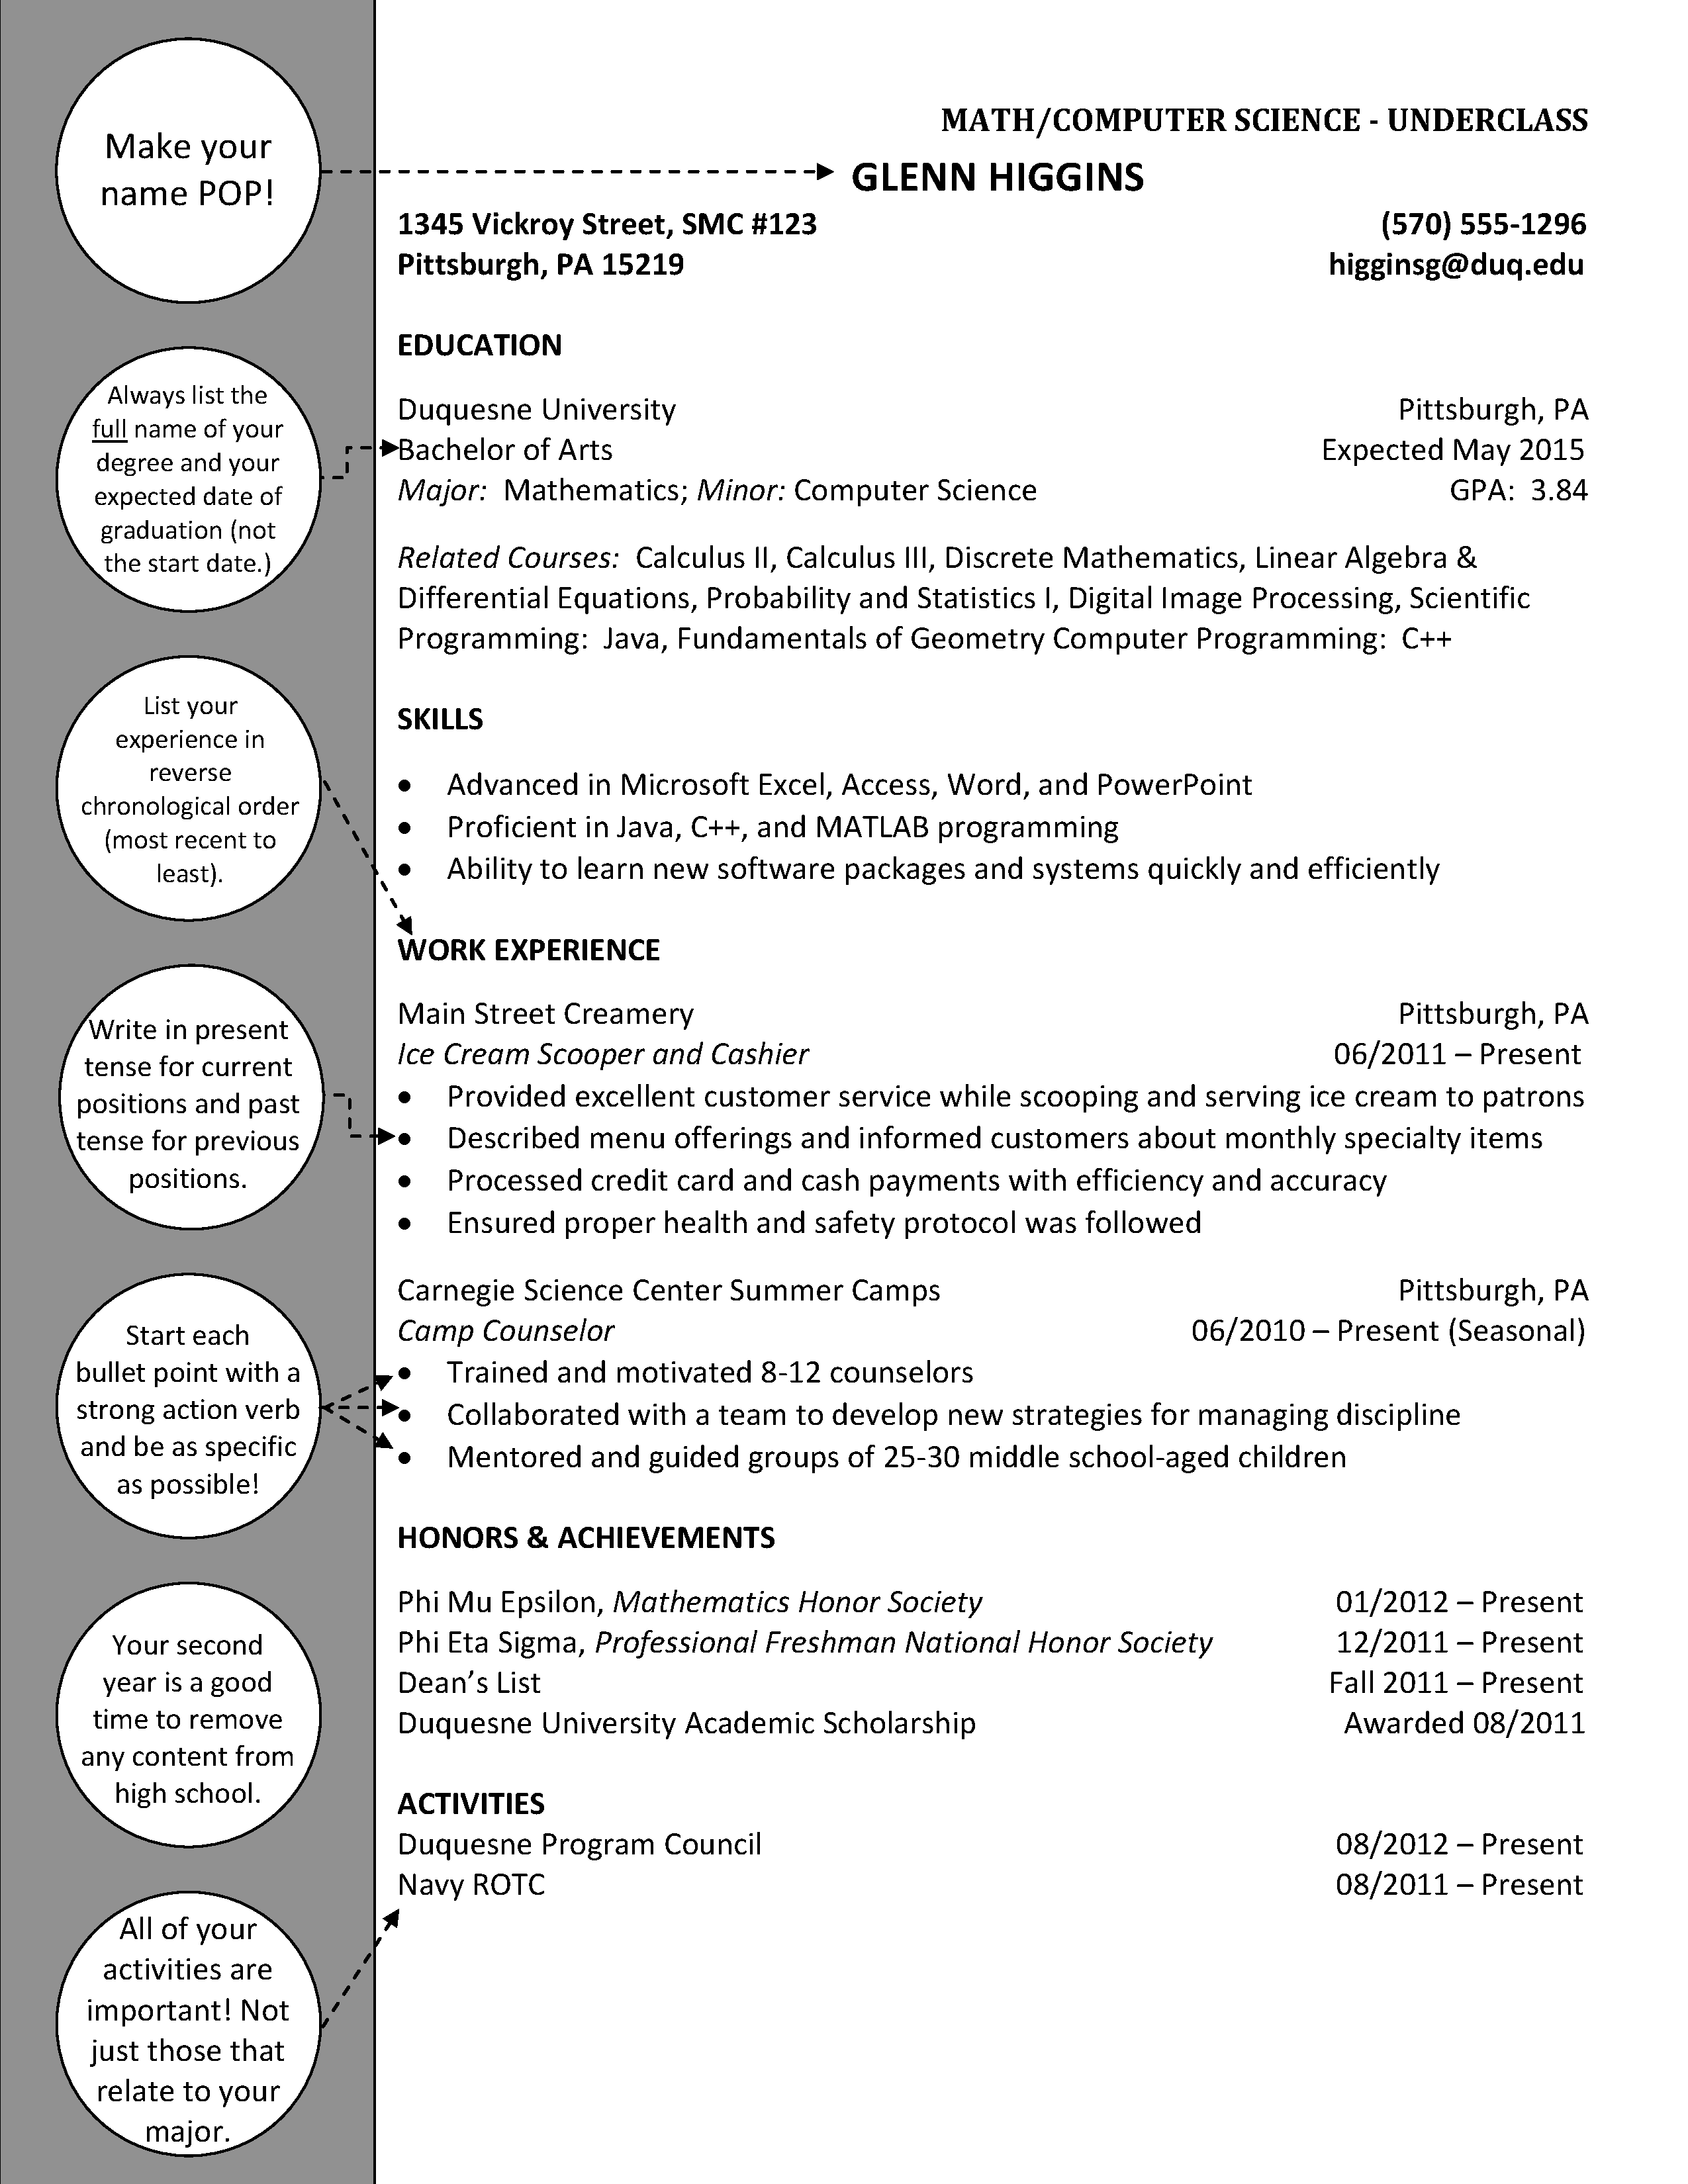 Mathematics Computer Science Underclass Cover Letter For Resume Resume Cover Letter Examples Cover Letter Example